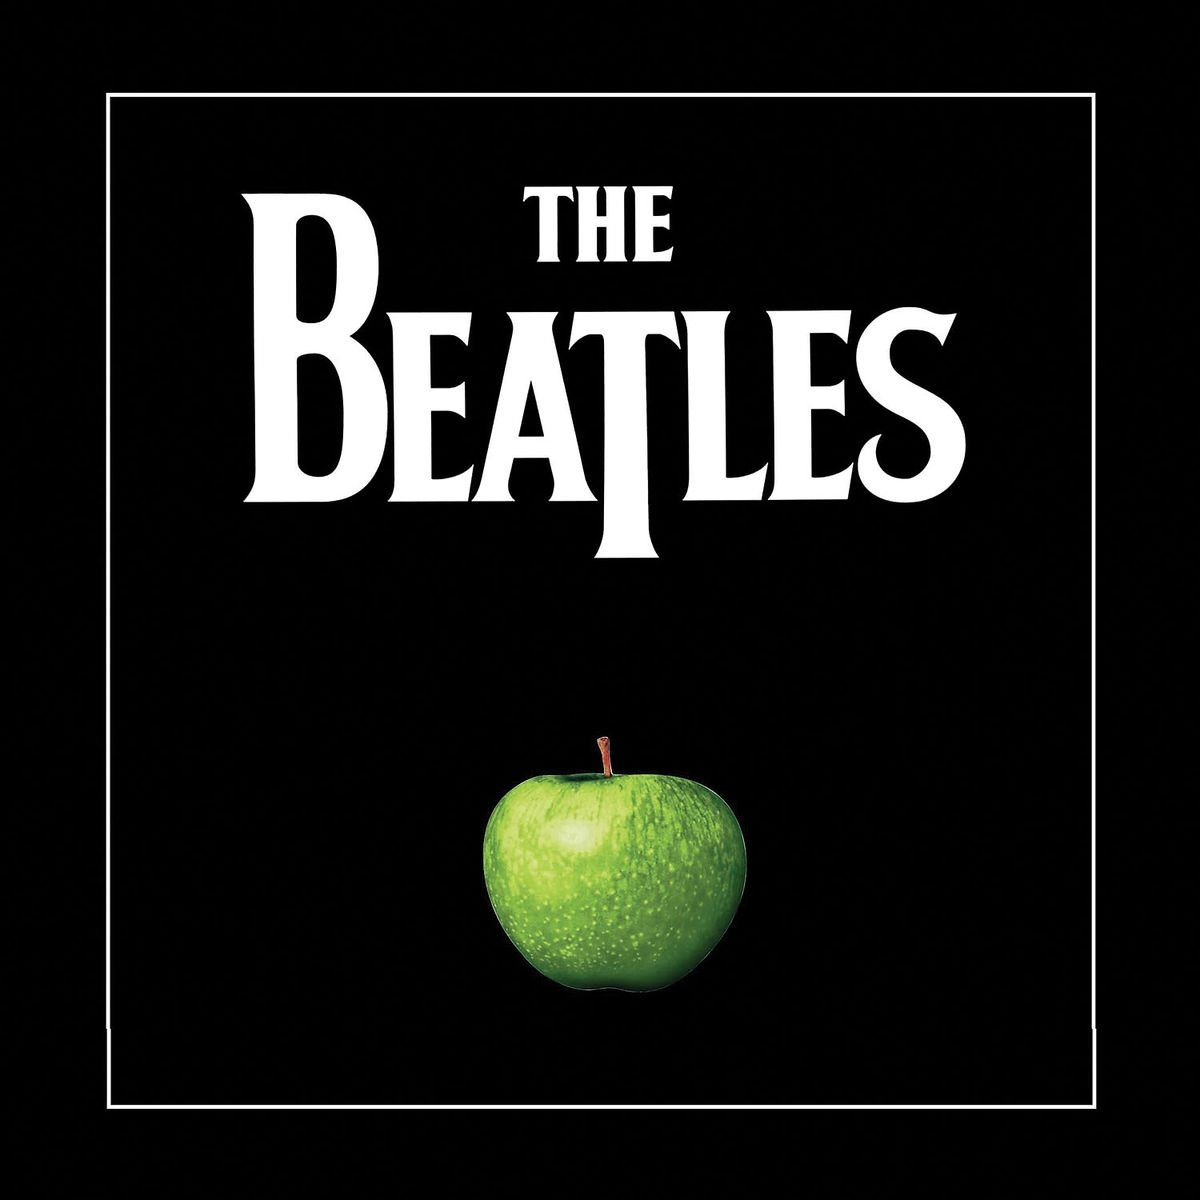 The Beatles Original CD Box Set